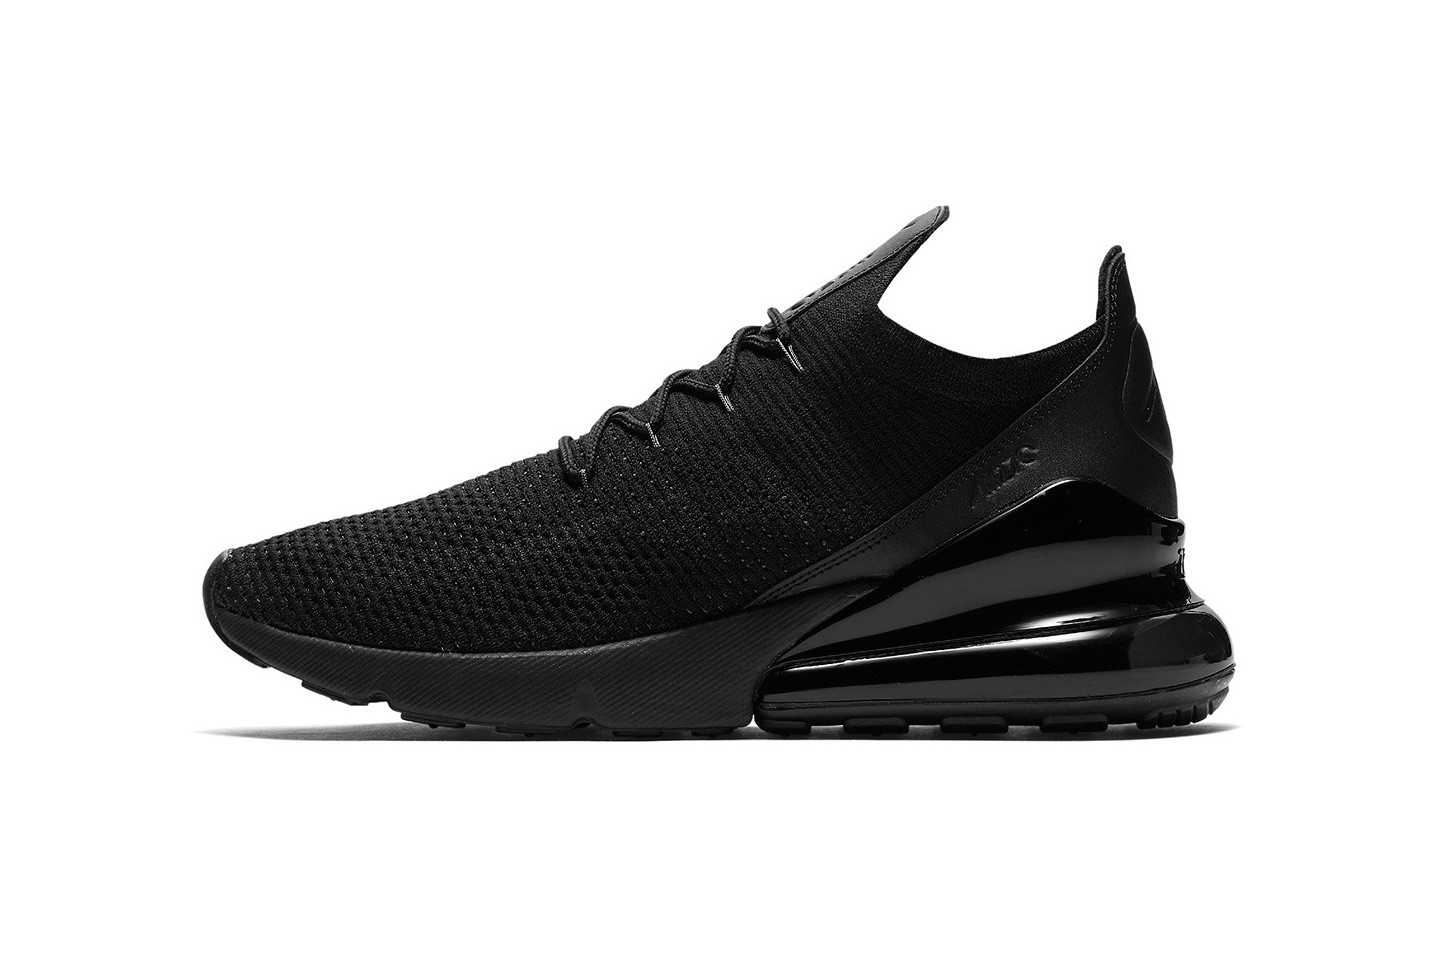 Nike Air Max 270 Flyknit in \